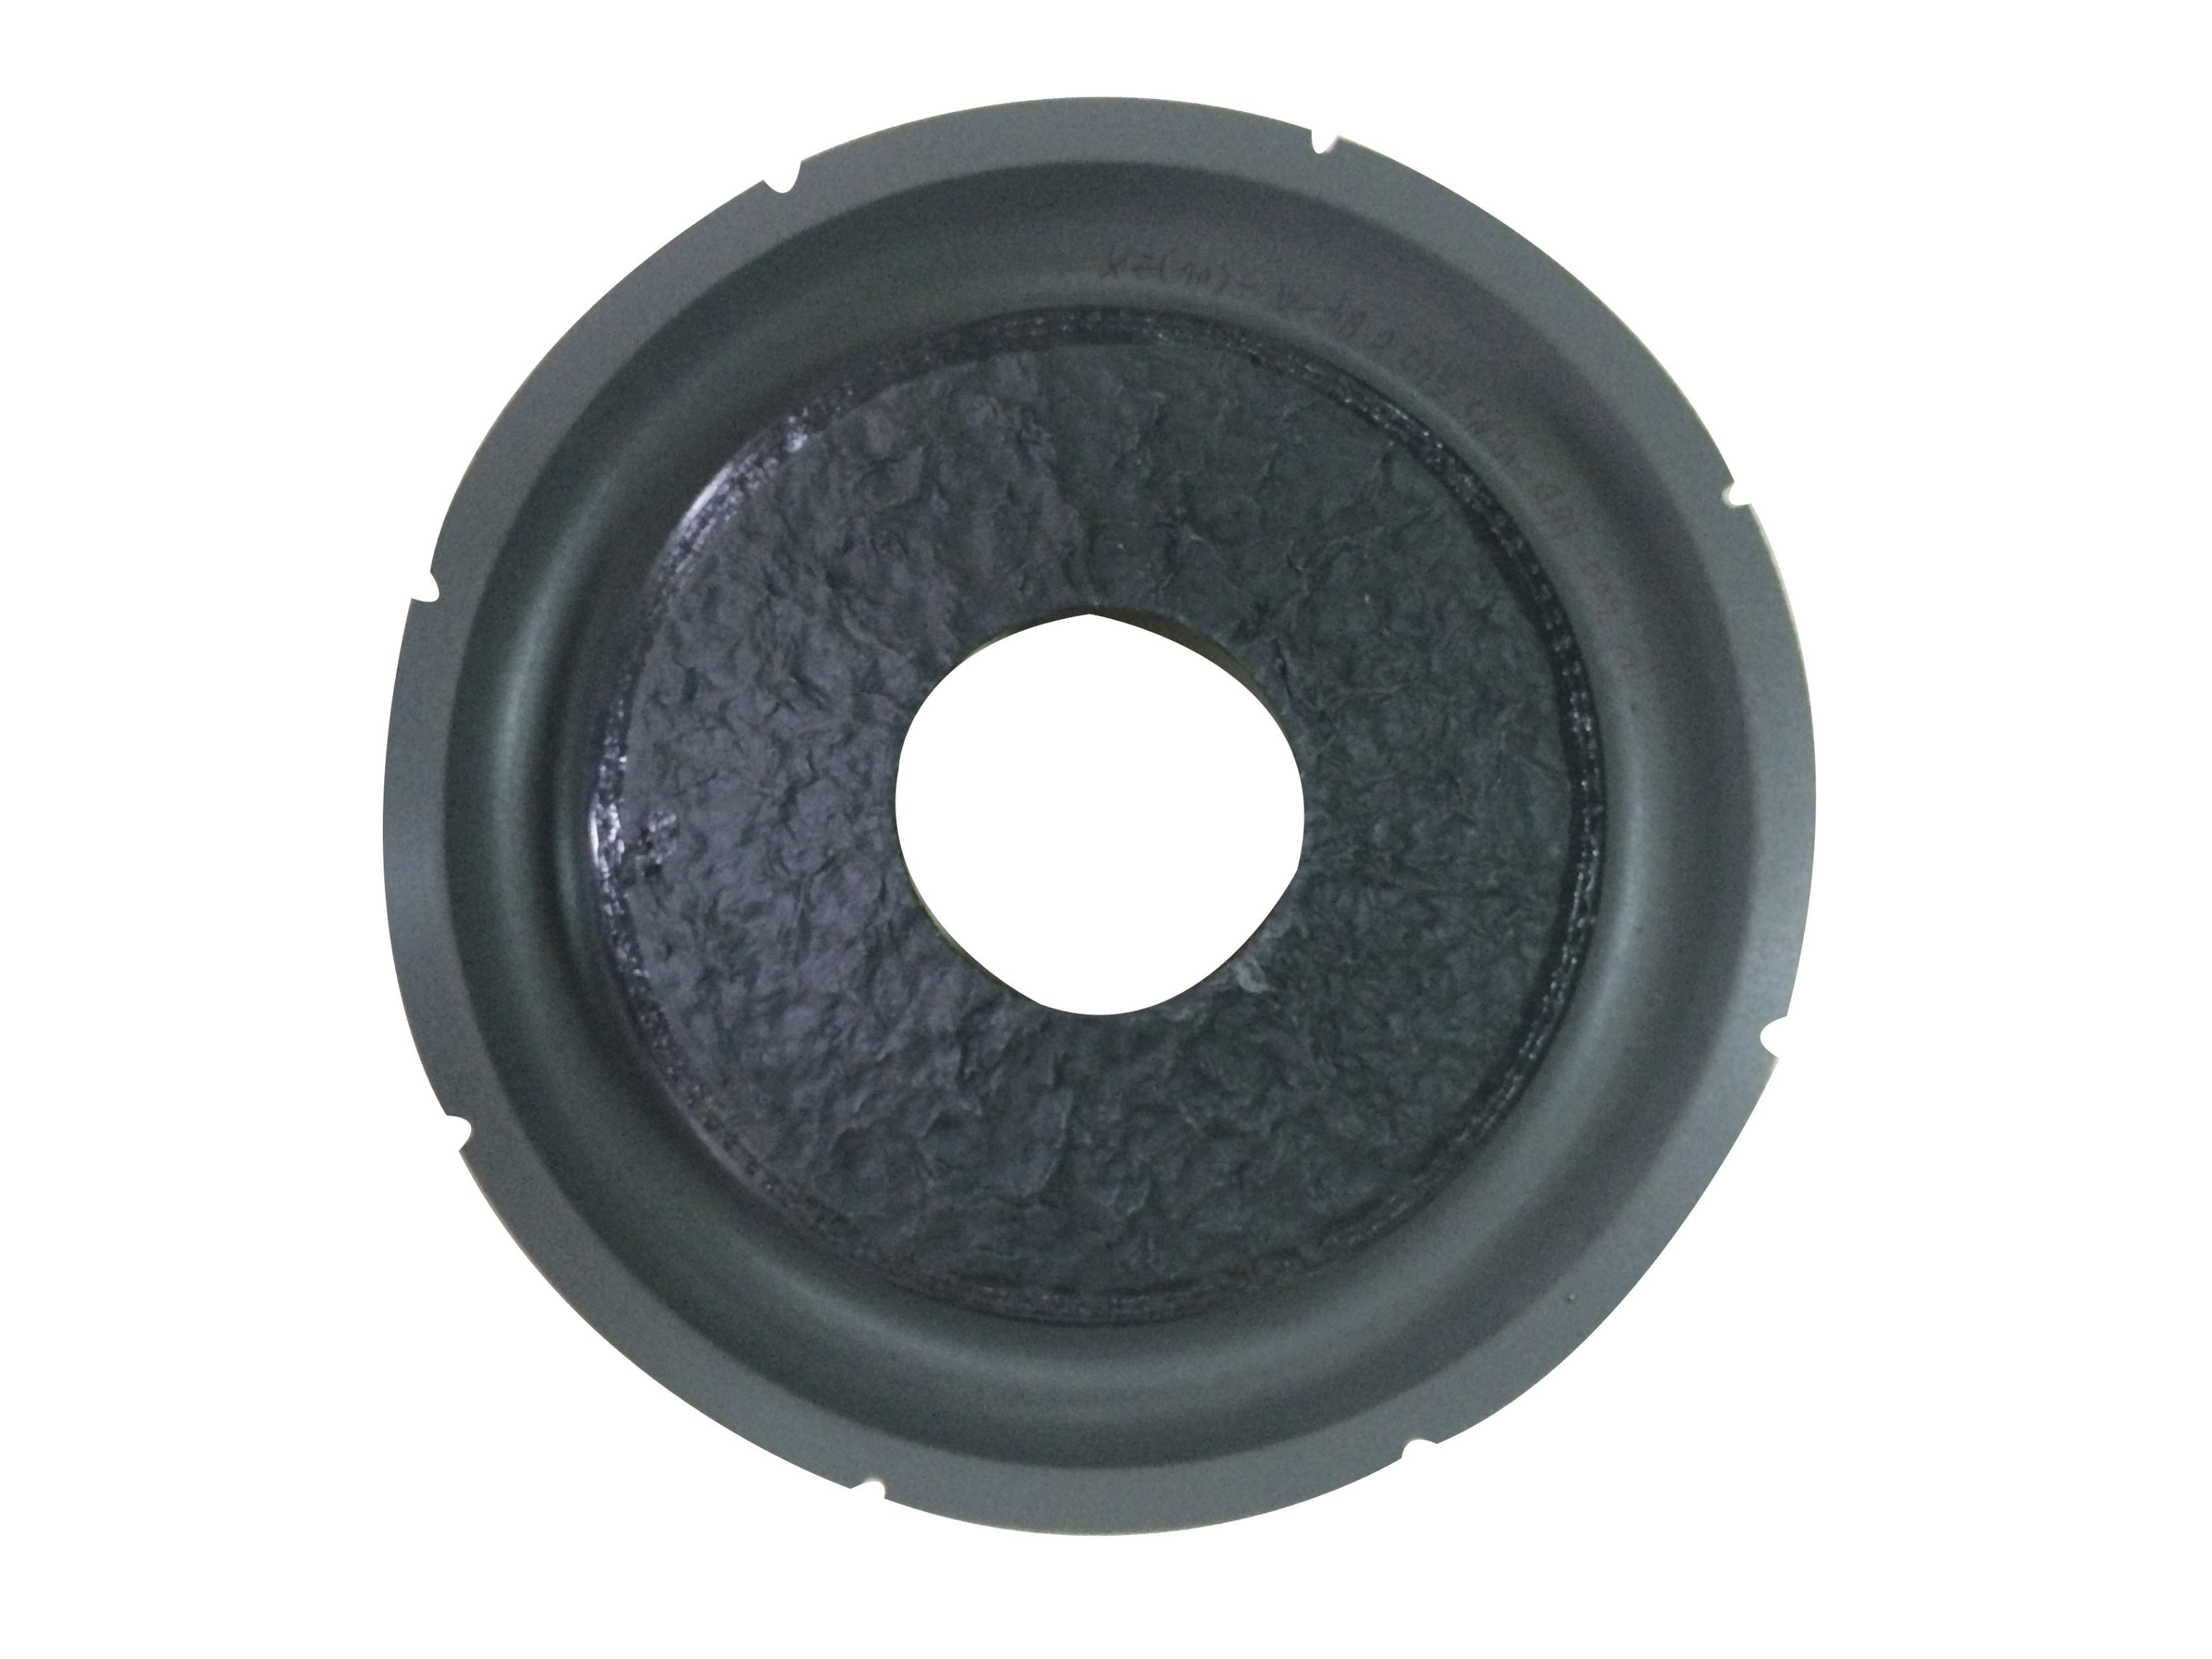 Professional From Factory Speaker Parts 12inch Subwoofer Papar Cone - Speaker Cone